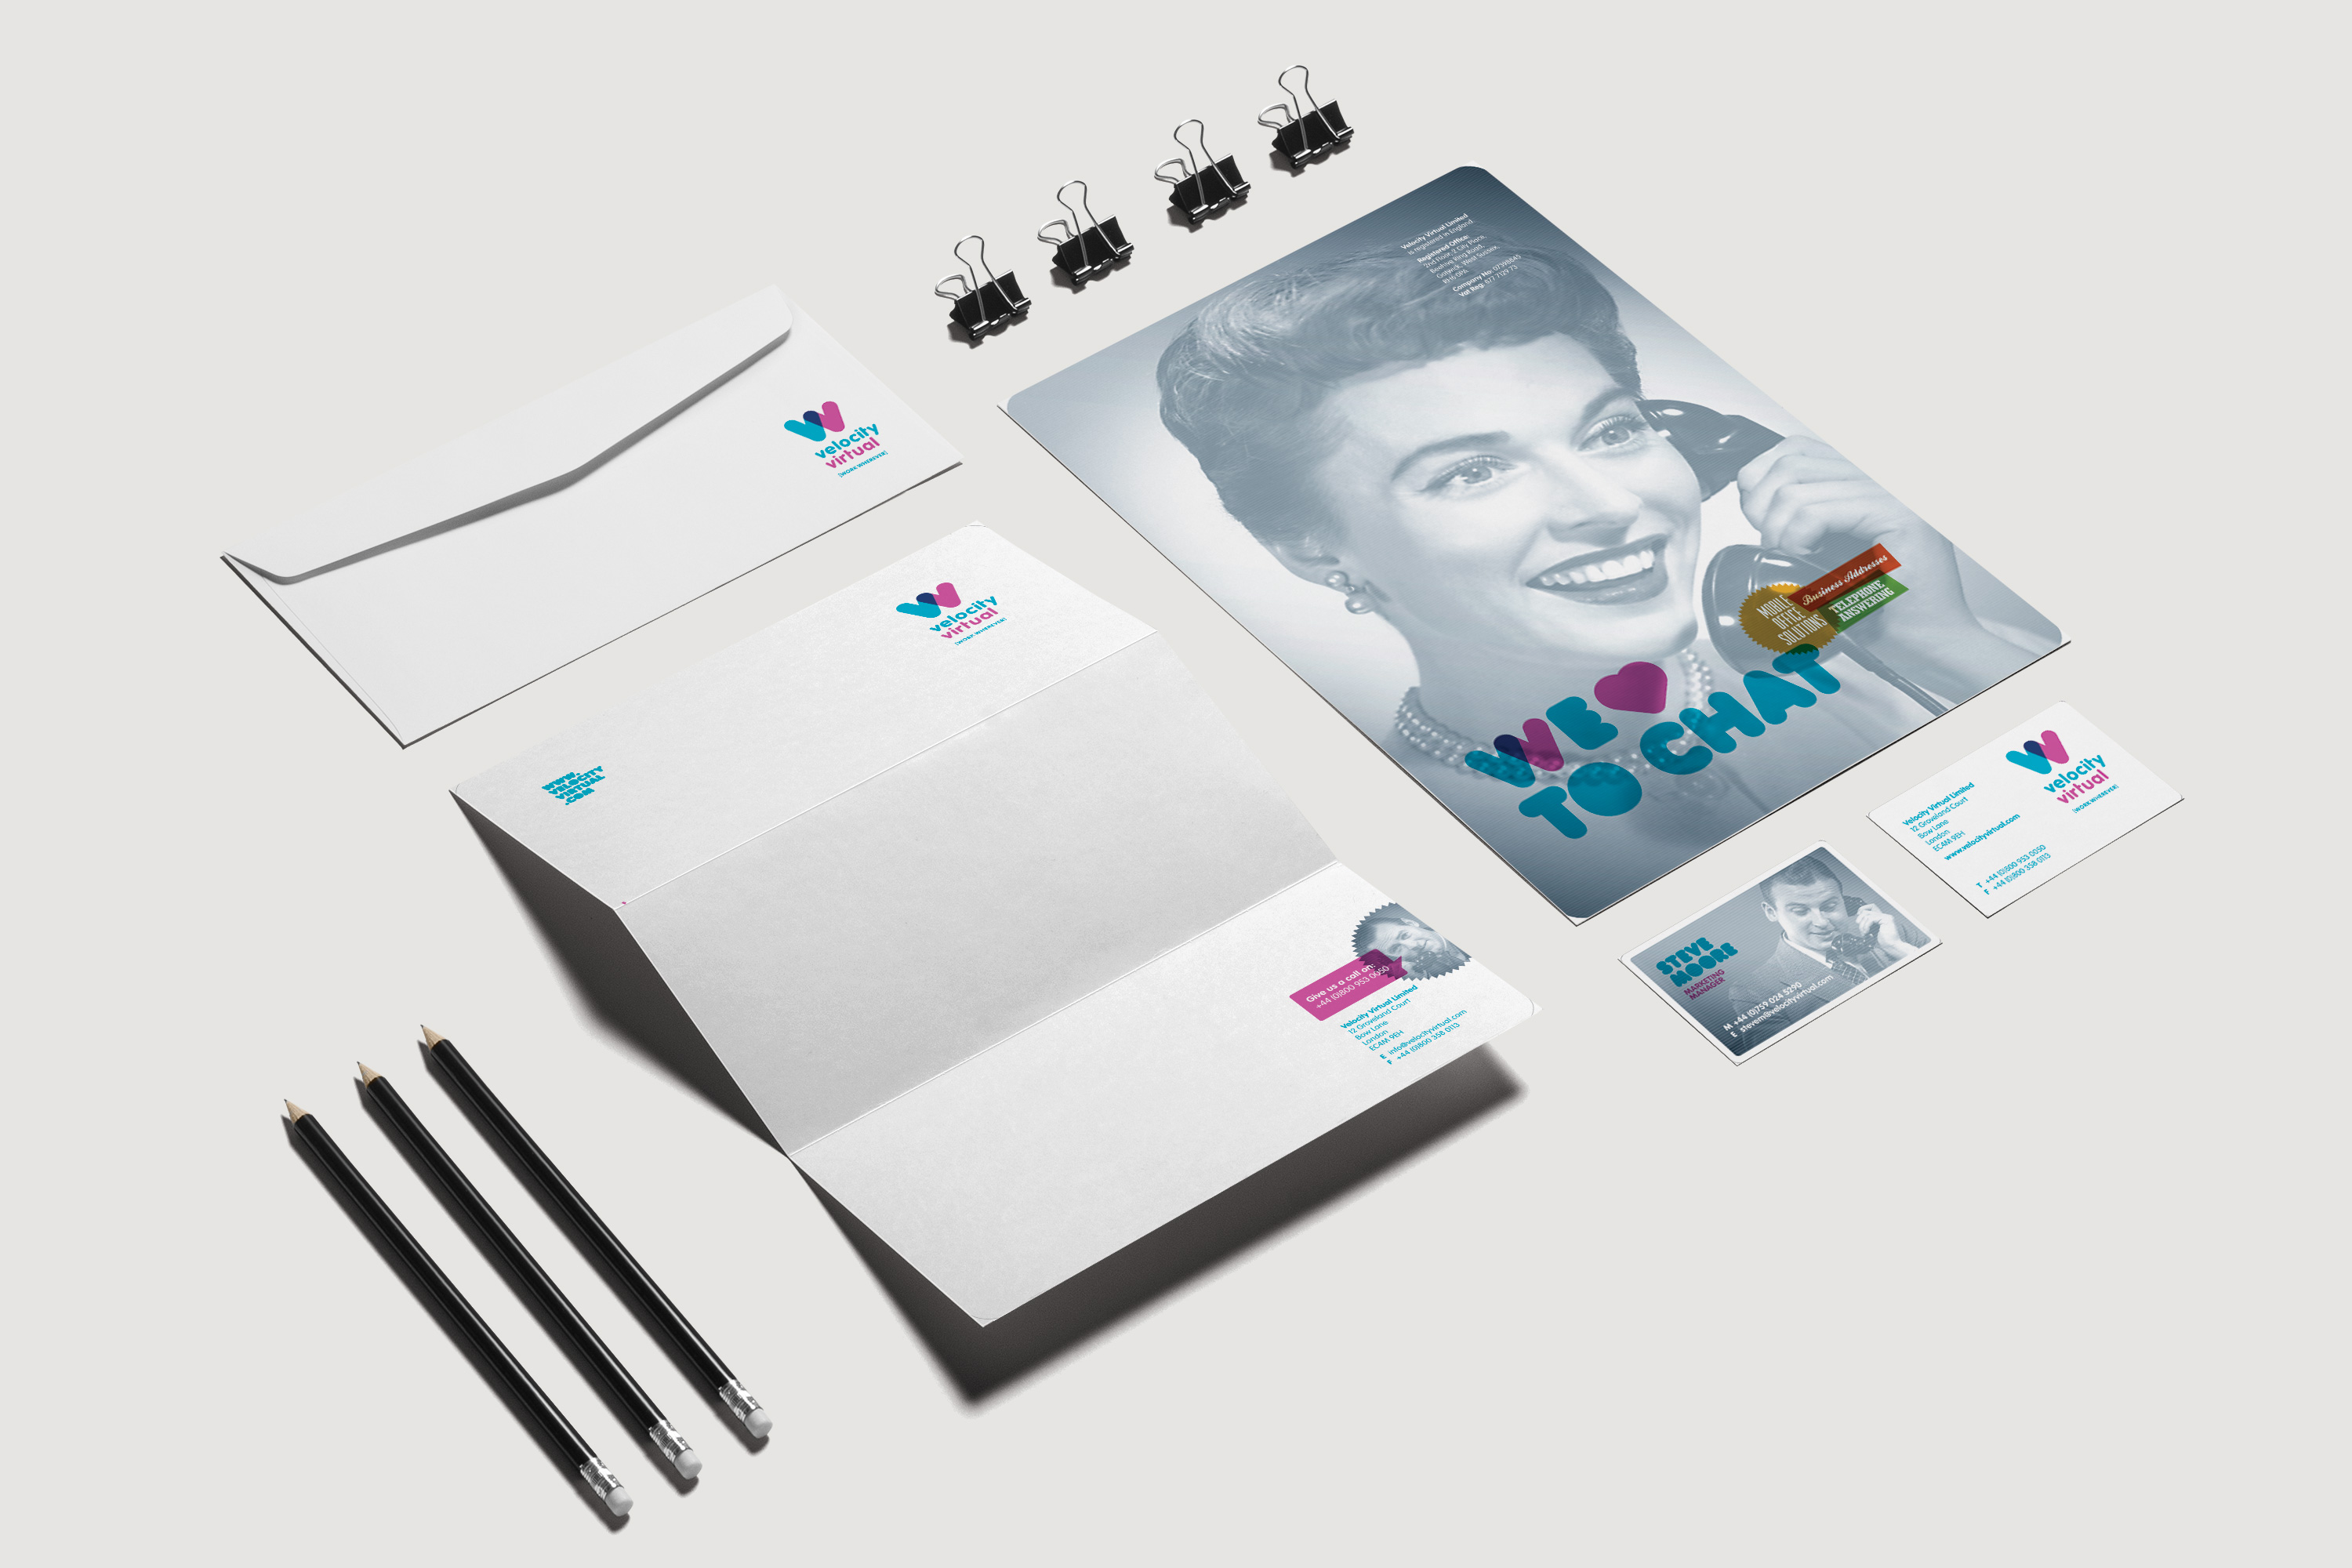 Velocity Virtual Stationery